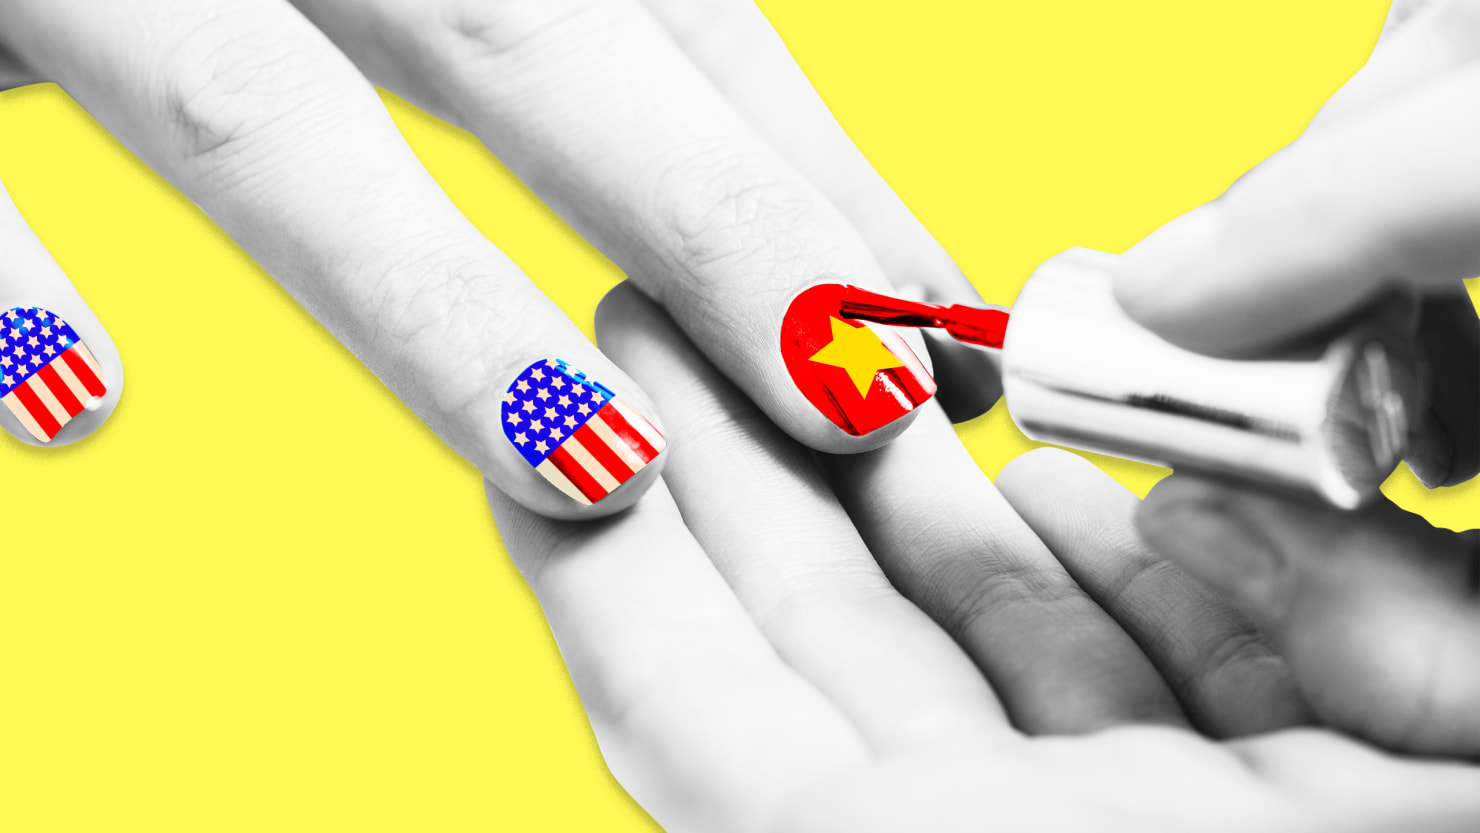 The Nail Diaspora How Manicures Transformed Vietnamese Wiring Board Immigrant Experience In America